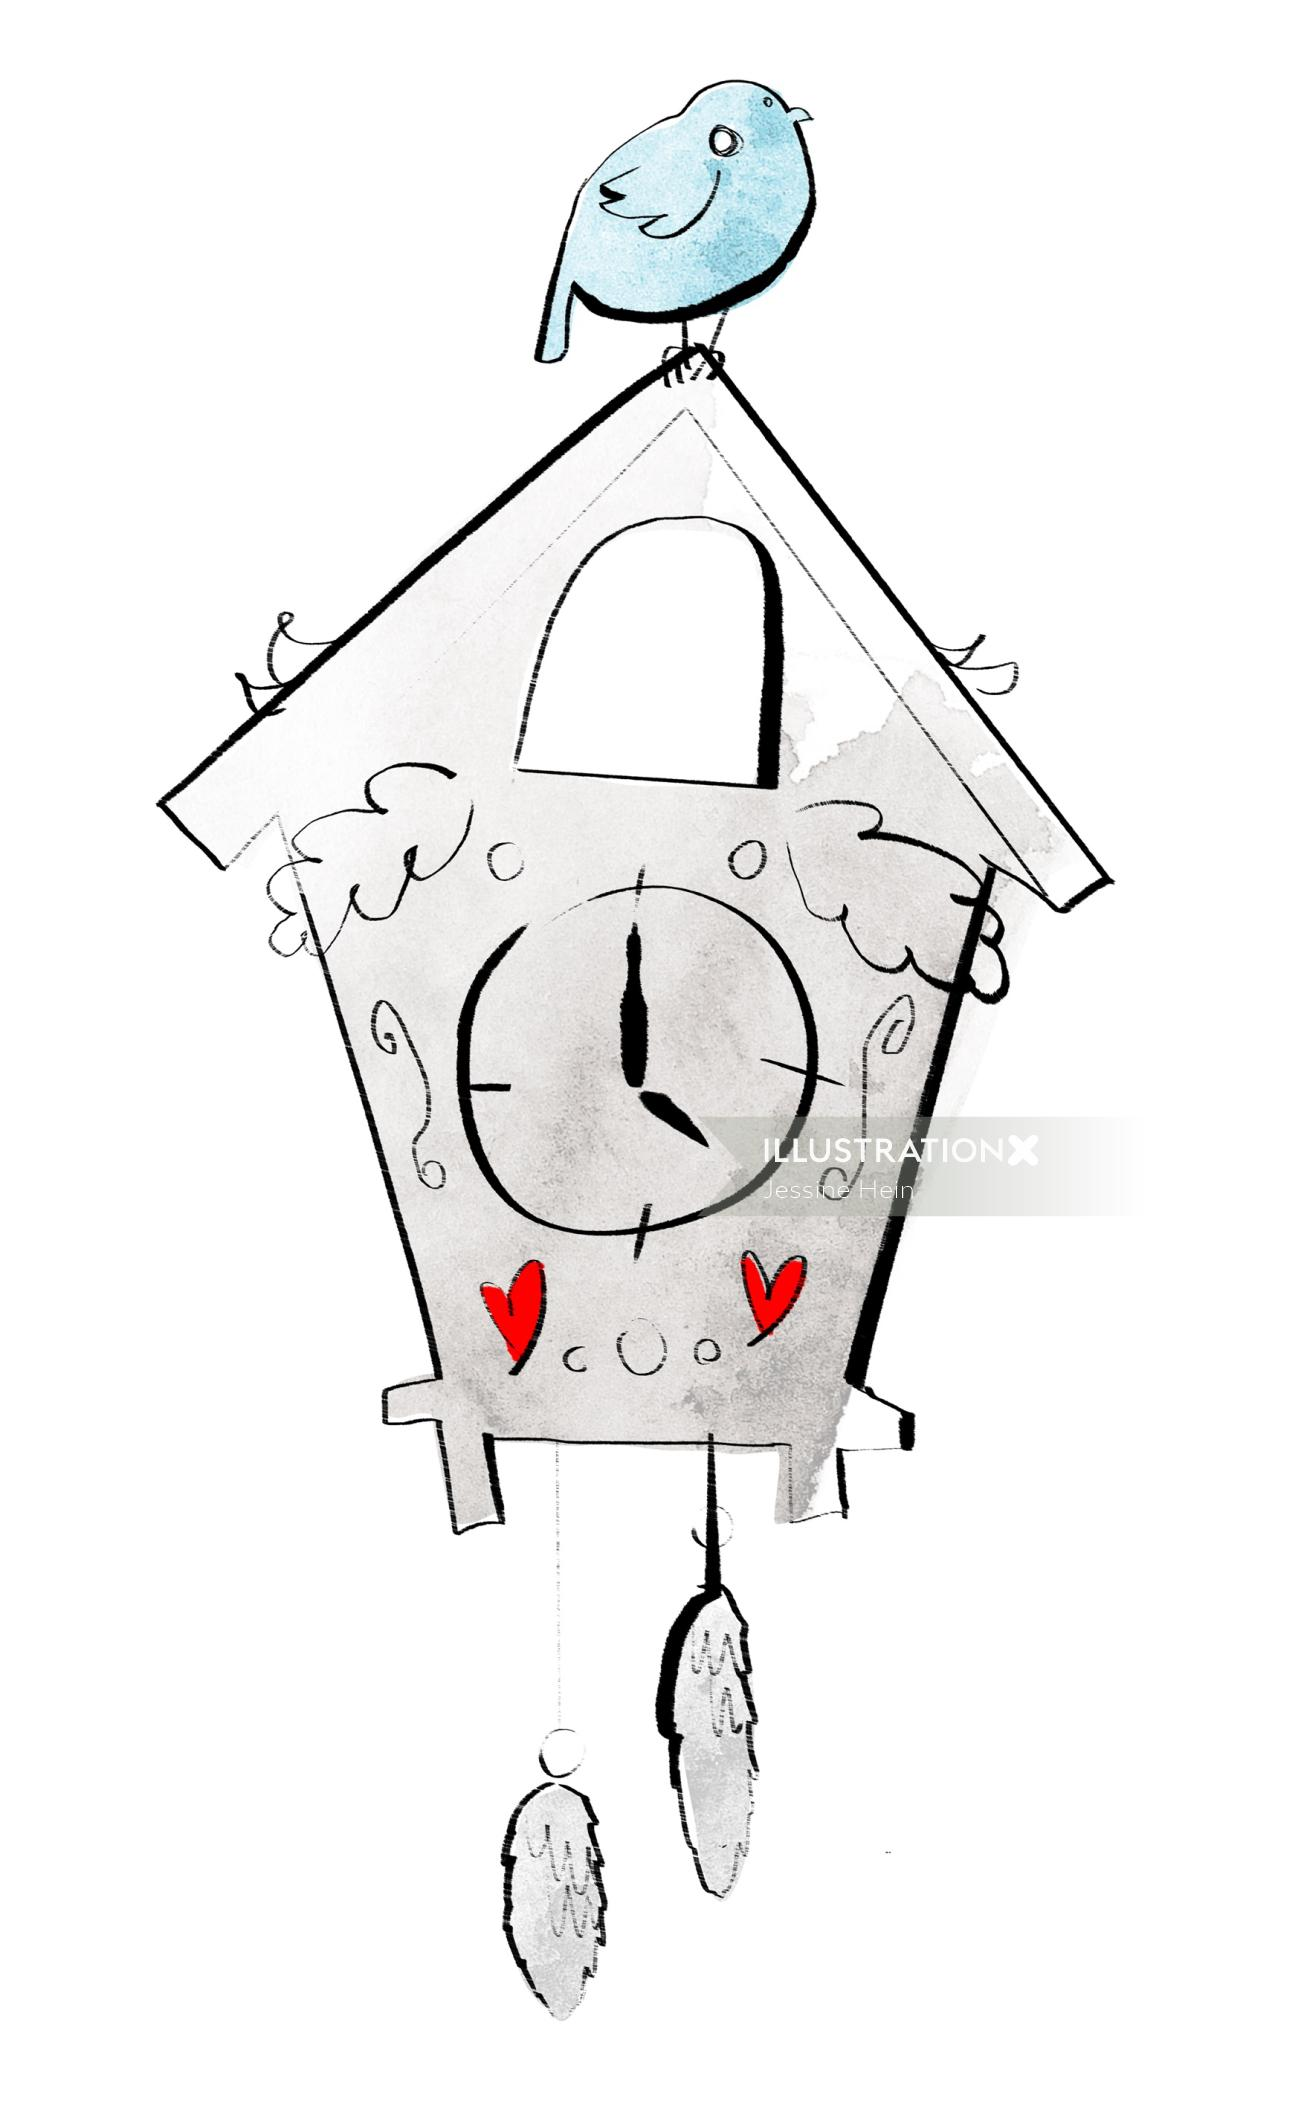 Clock line illustration by Jessine Hein